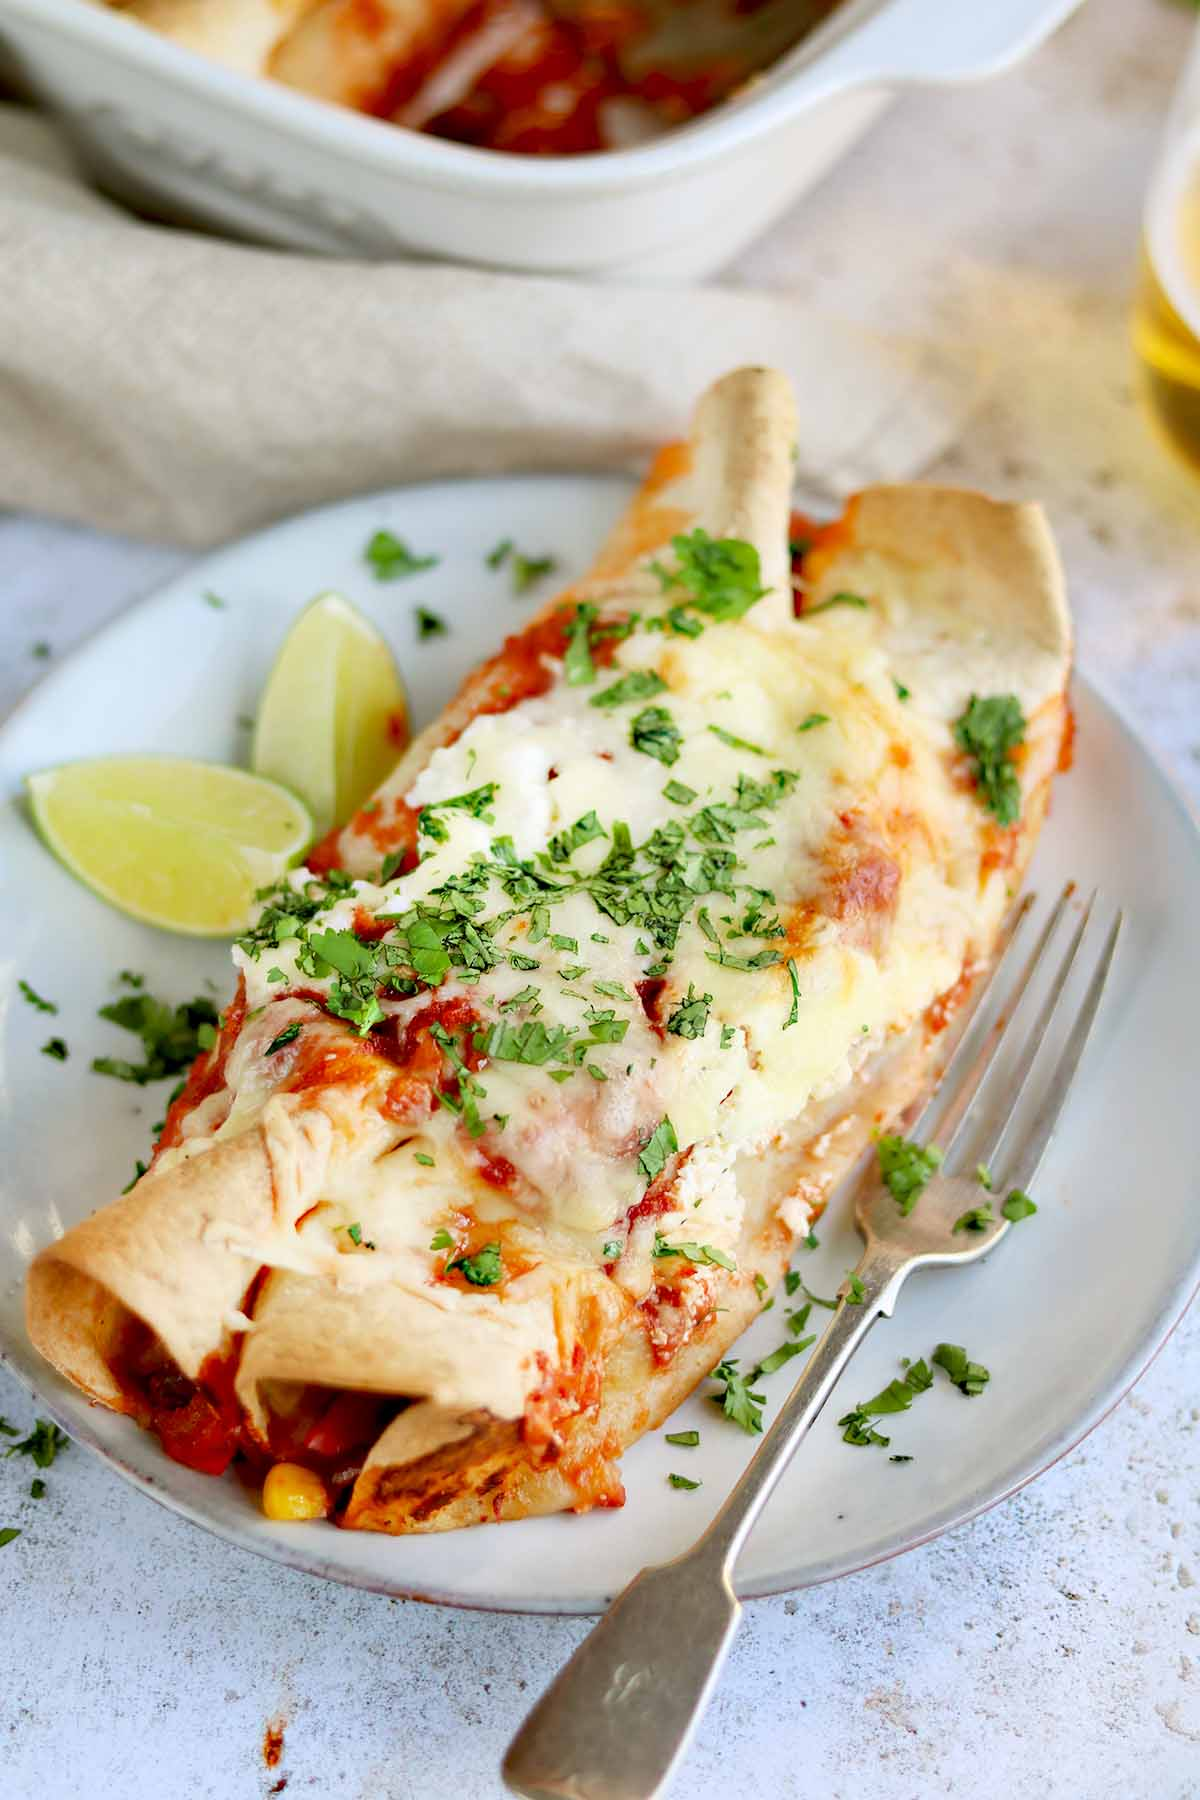 Tortillas with spicy tomato enchilada sauce, covered is melted cheese with a coriander garnish served on a plate